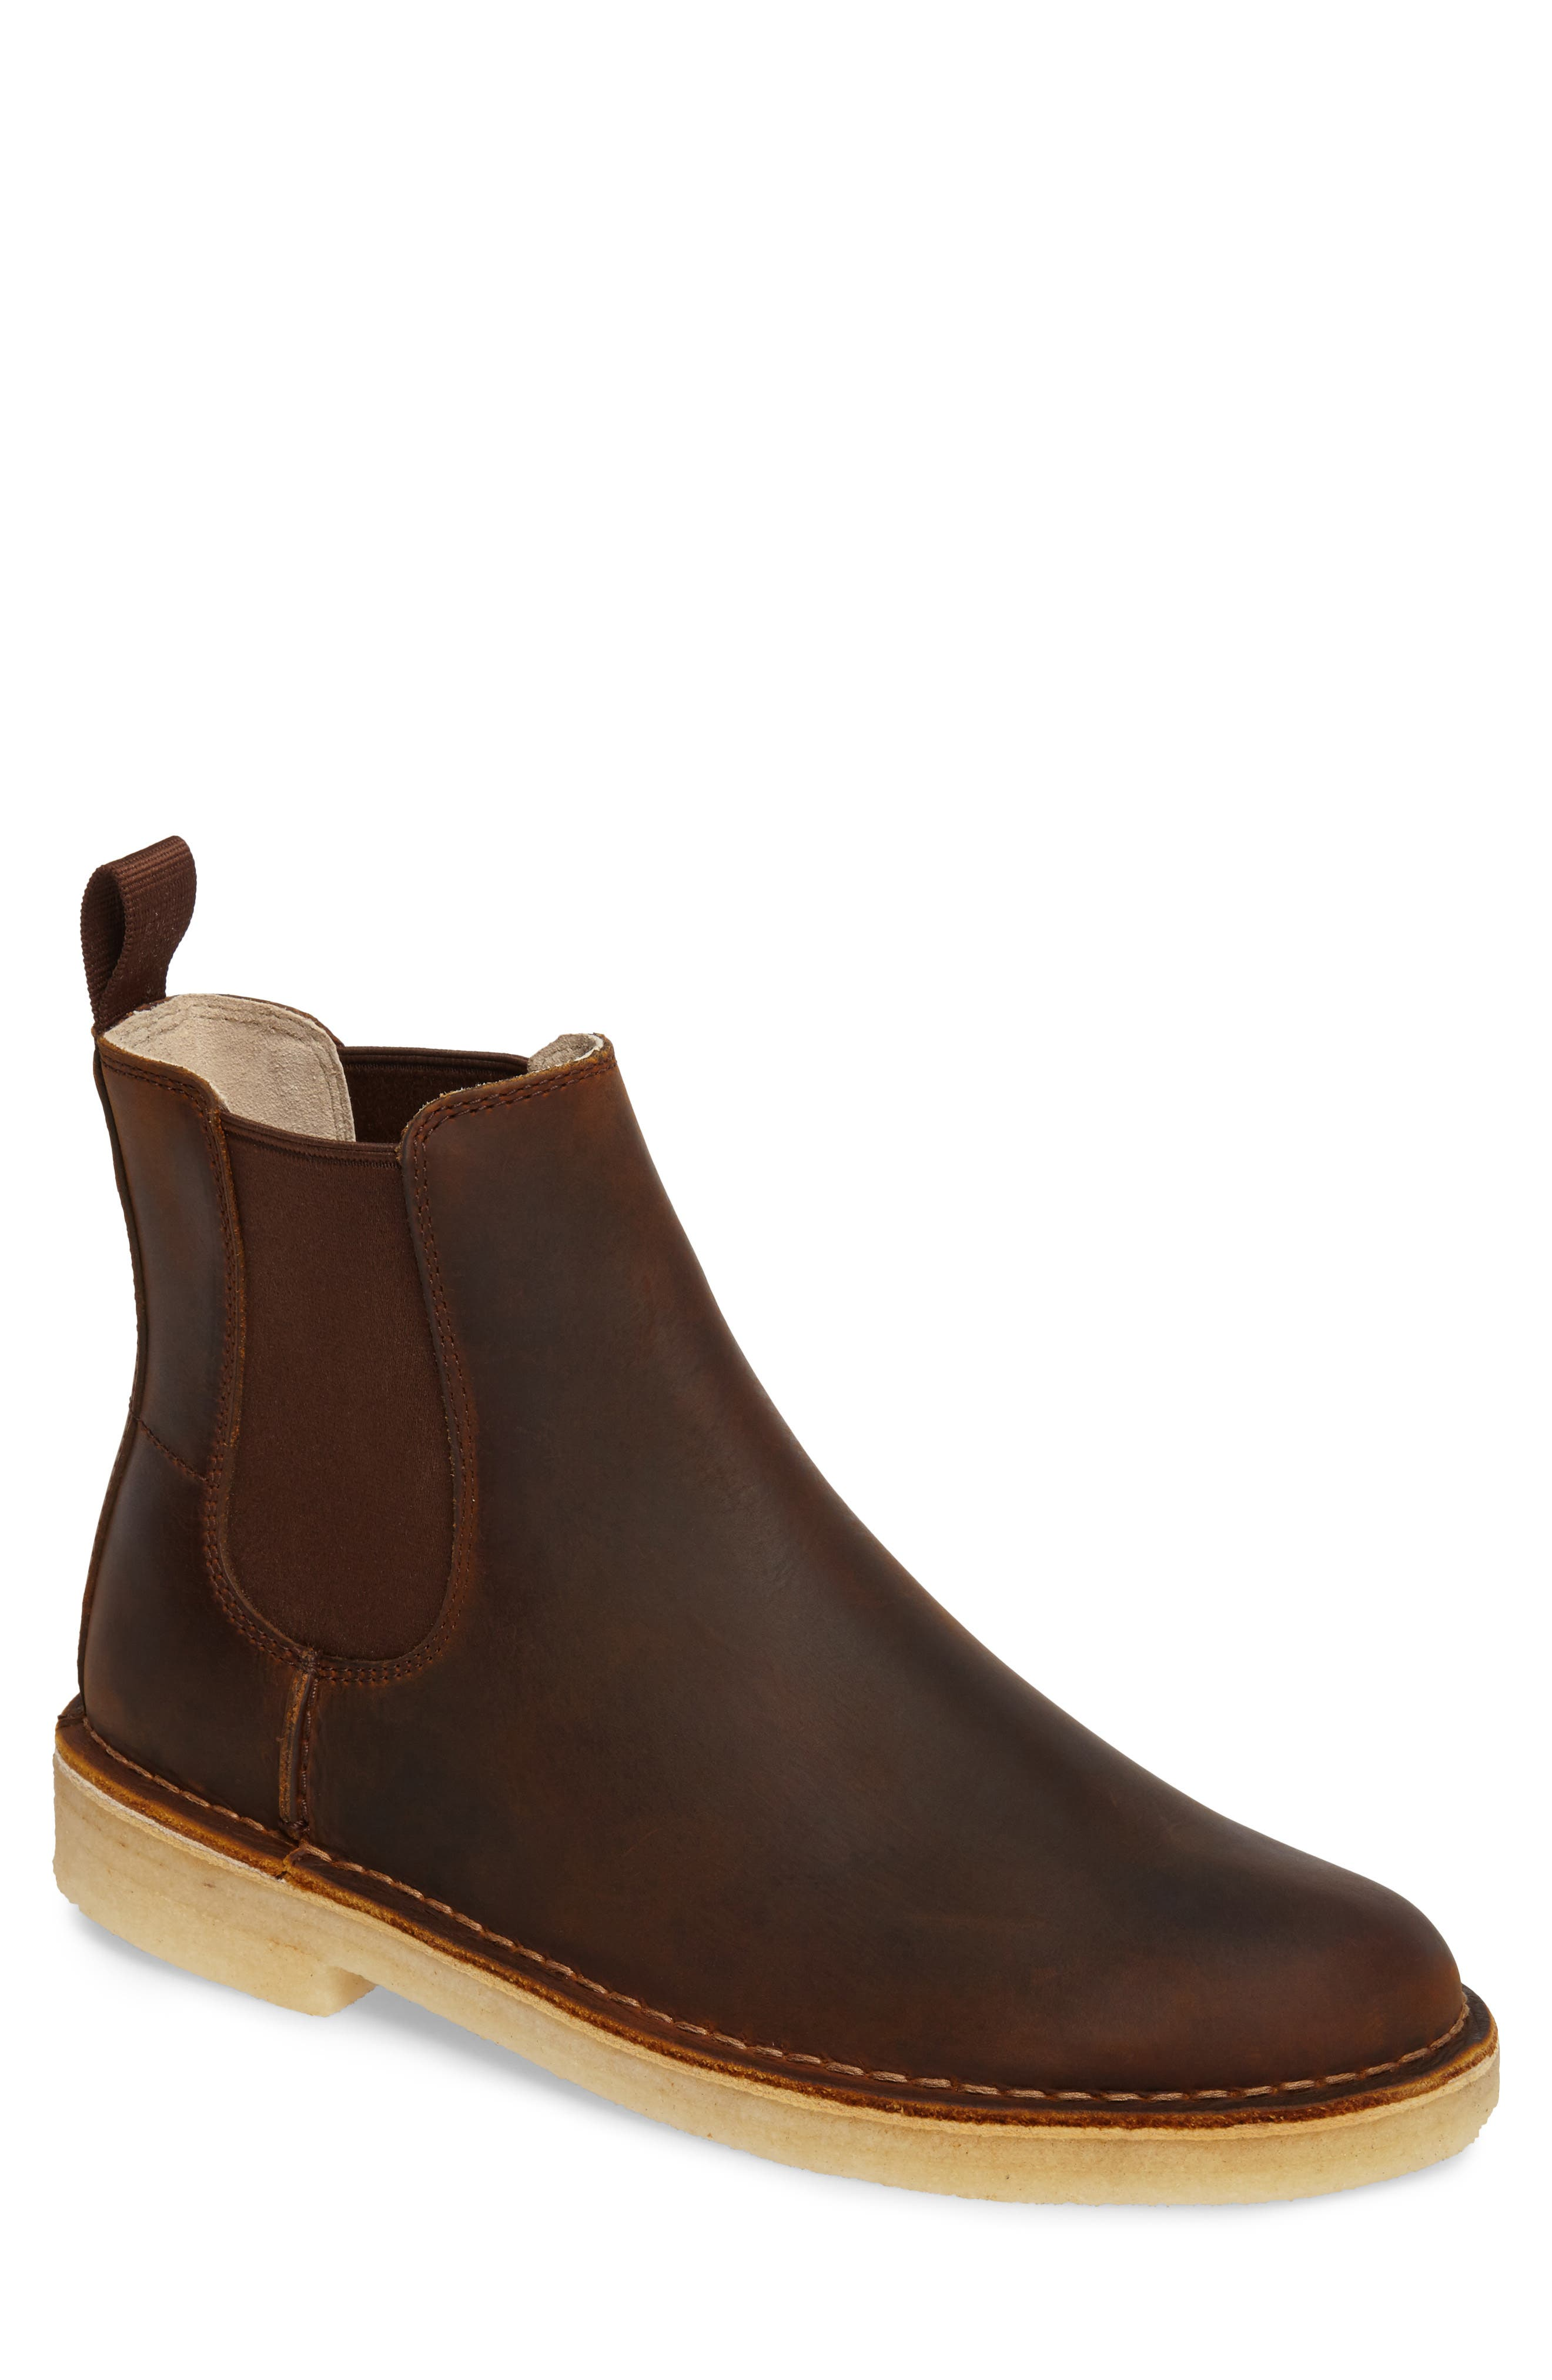 CLARKS<SUP>®</SUP> Desert Peak Chelsea Boot, Main, color, MEDIUM BROWN BEESWAX LEATHER